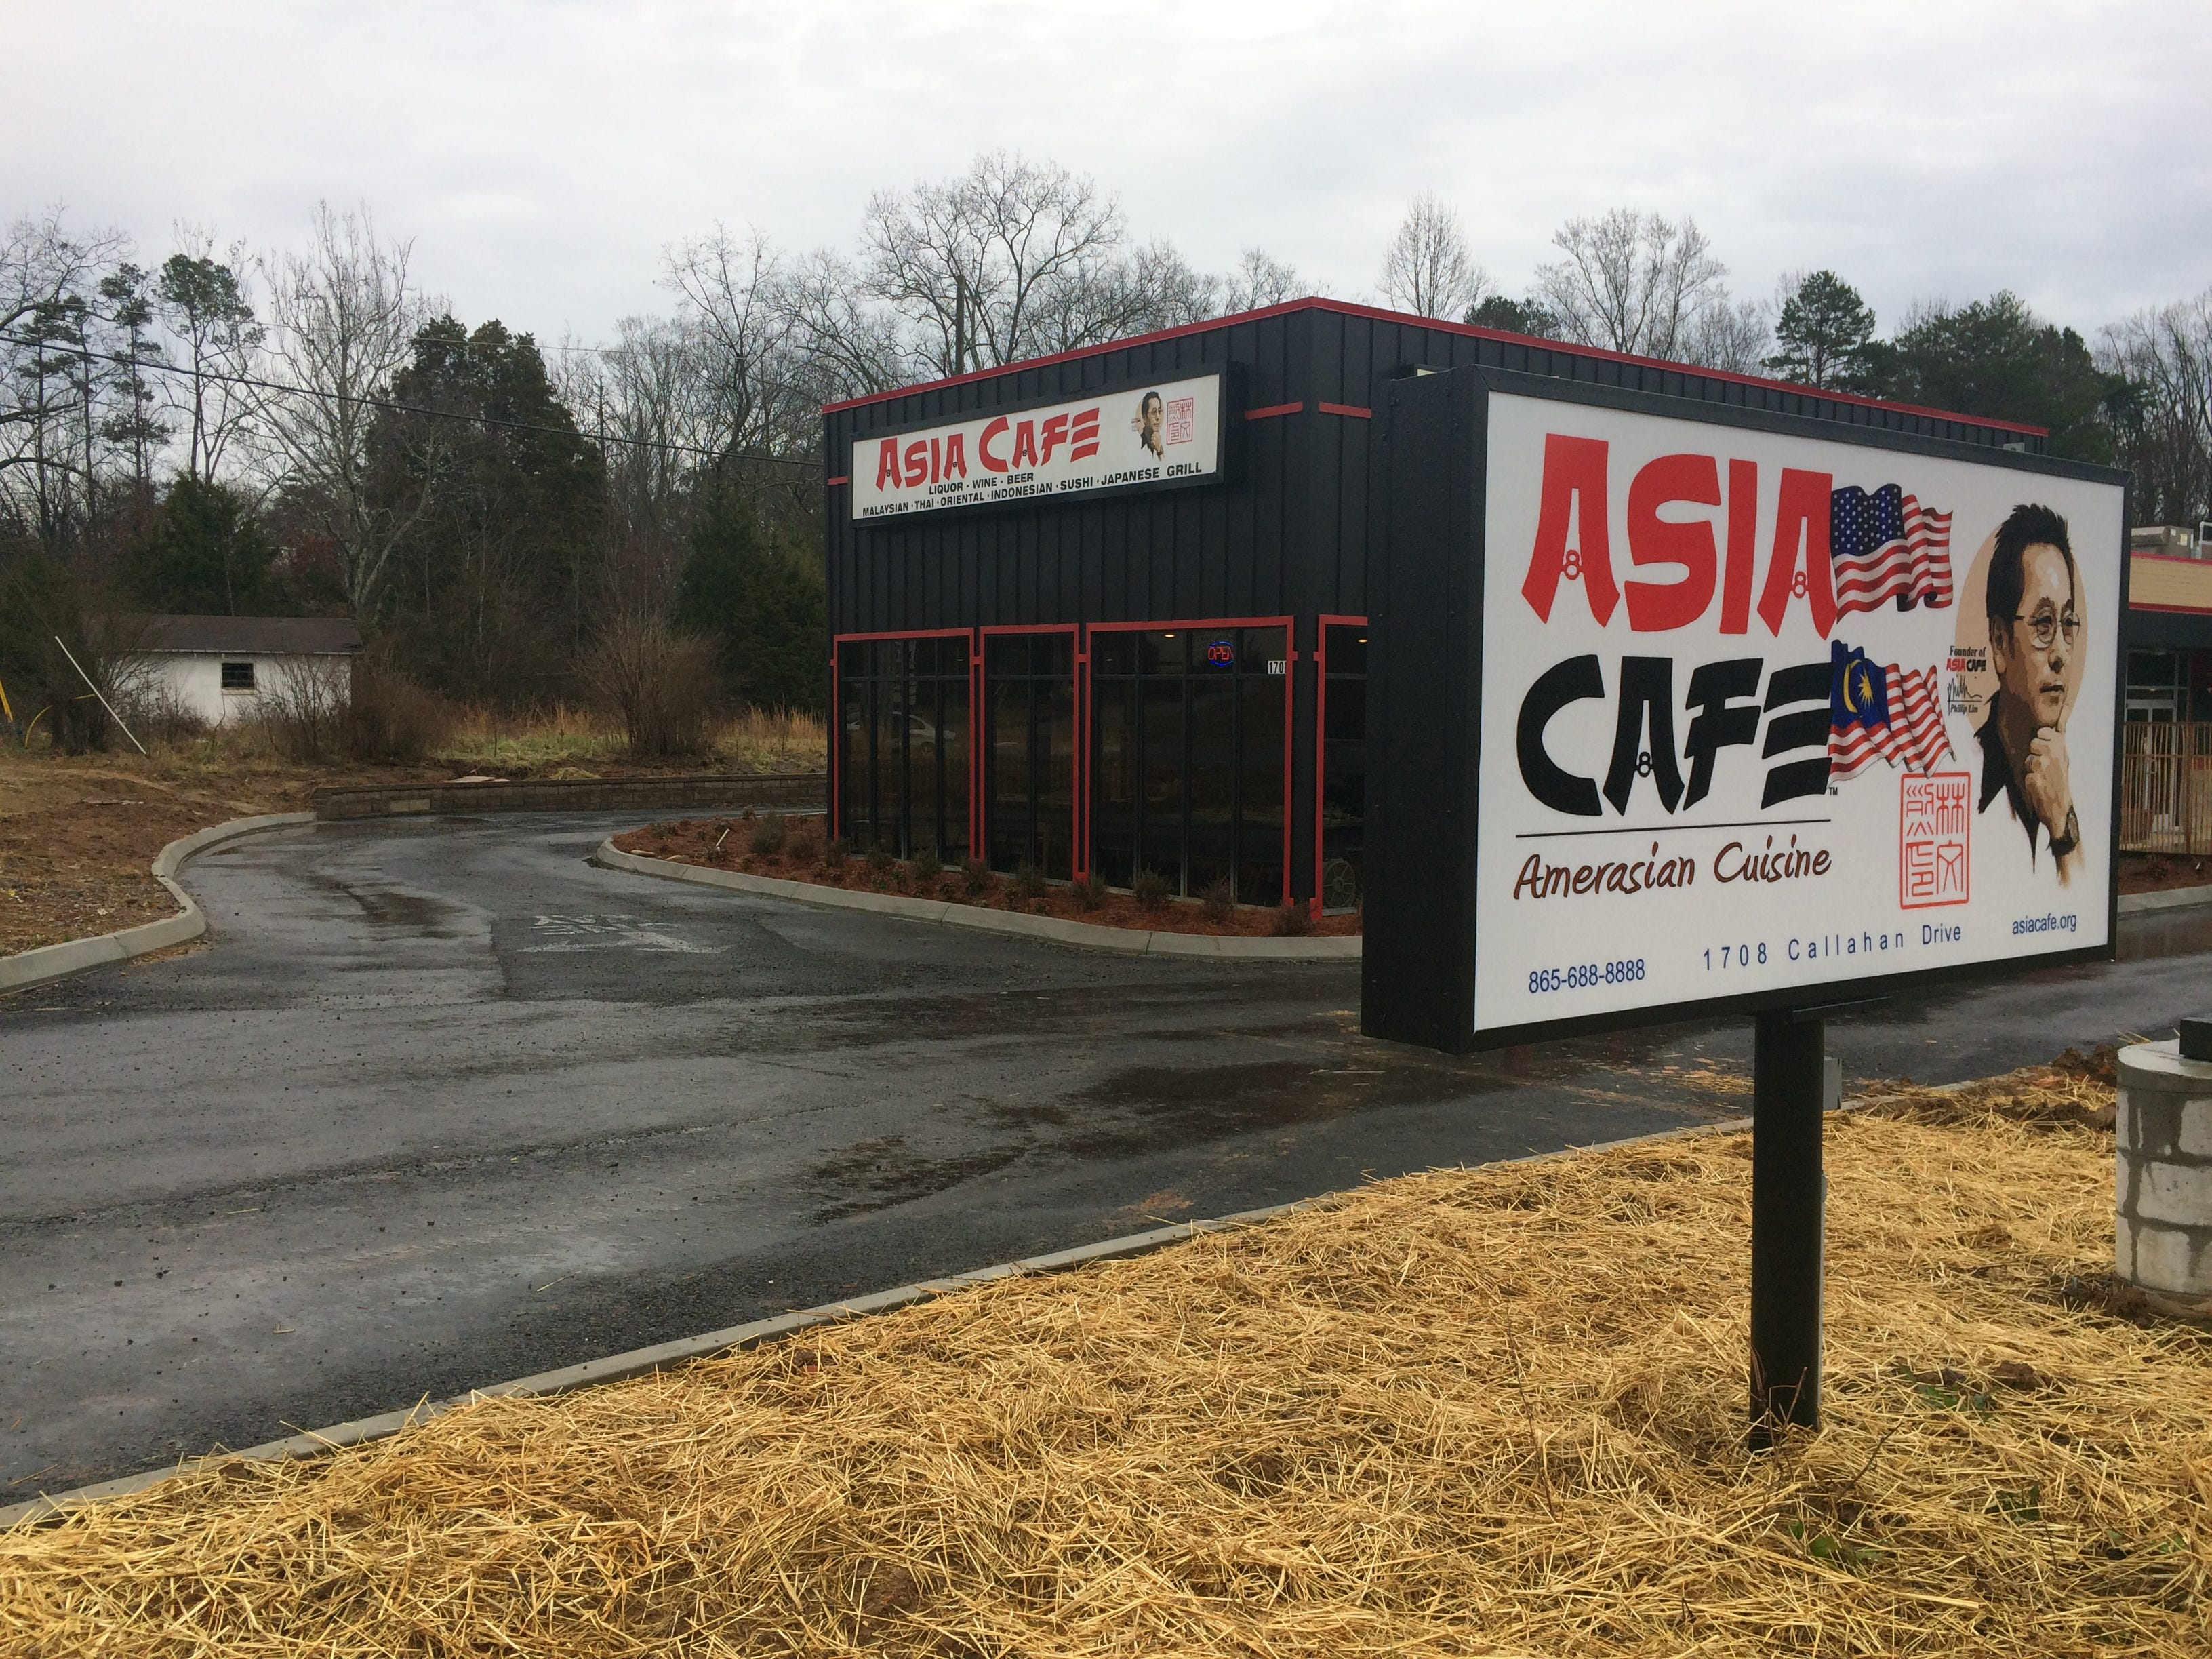 It took more than three years, but the Asia Café has finally moved from Central Avenue to Callahan Road.